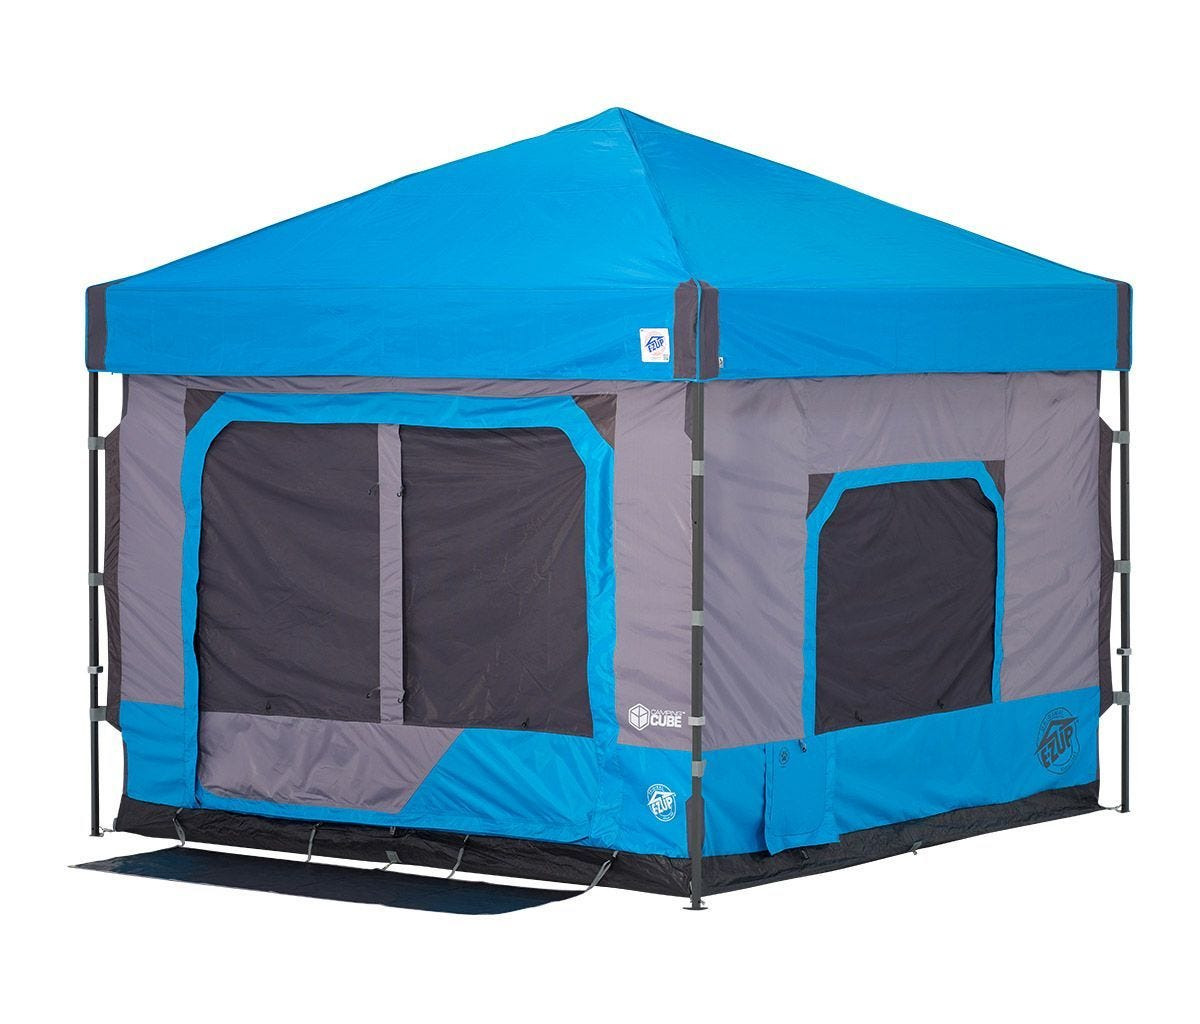 E-Z UP Official Site | Camping Cube™ 6.4 | #1 Instant Shelter